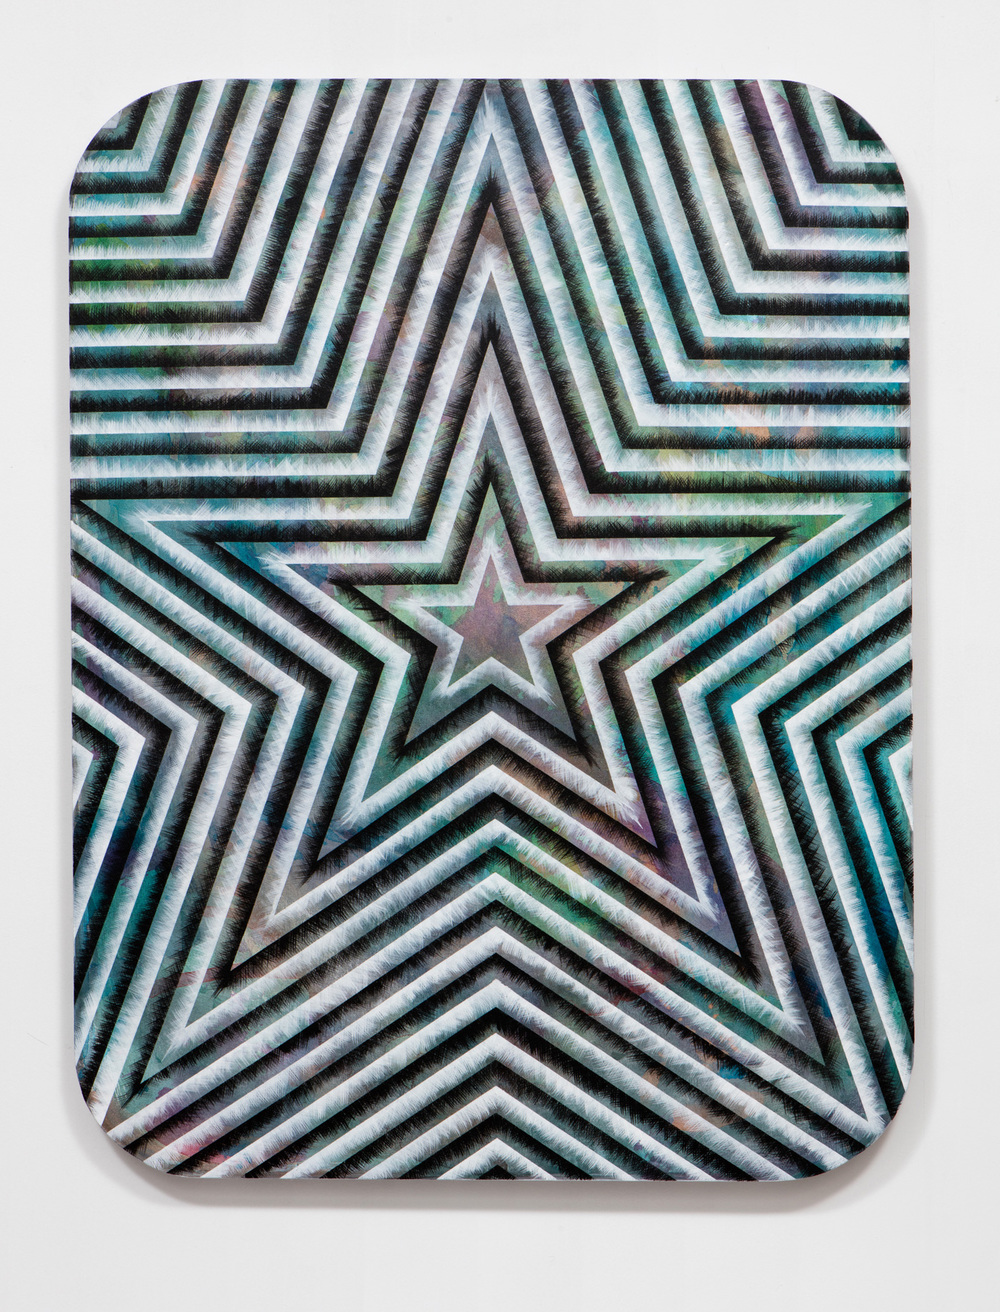 SLATE: Radial Painting No. 3 (star)  , 2015 Golden acrylic on canvas stretched over custom panel 48 x 36 inches